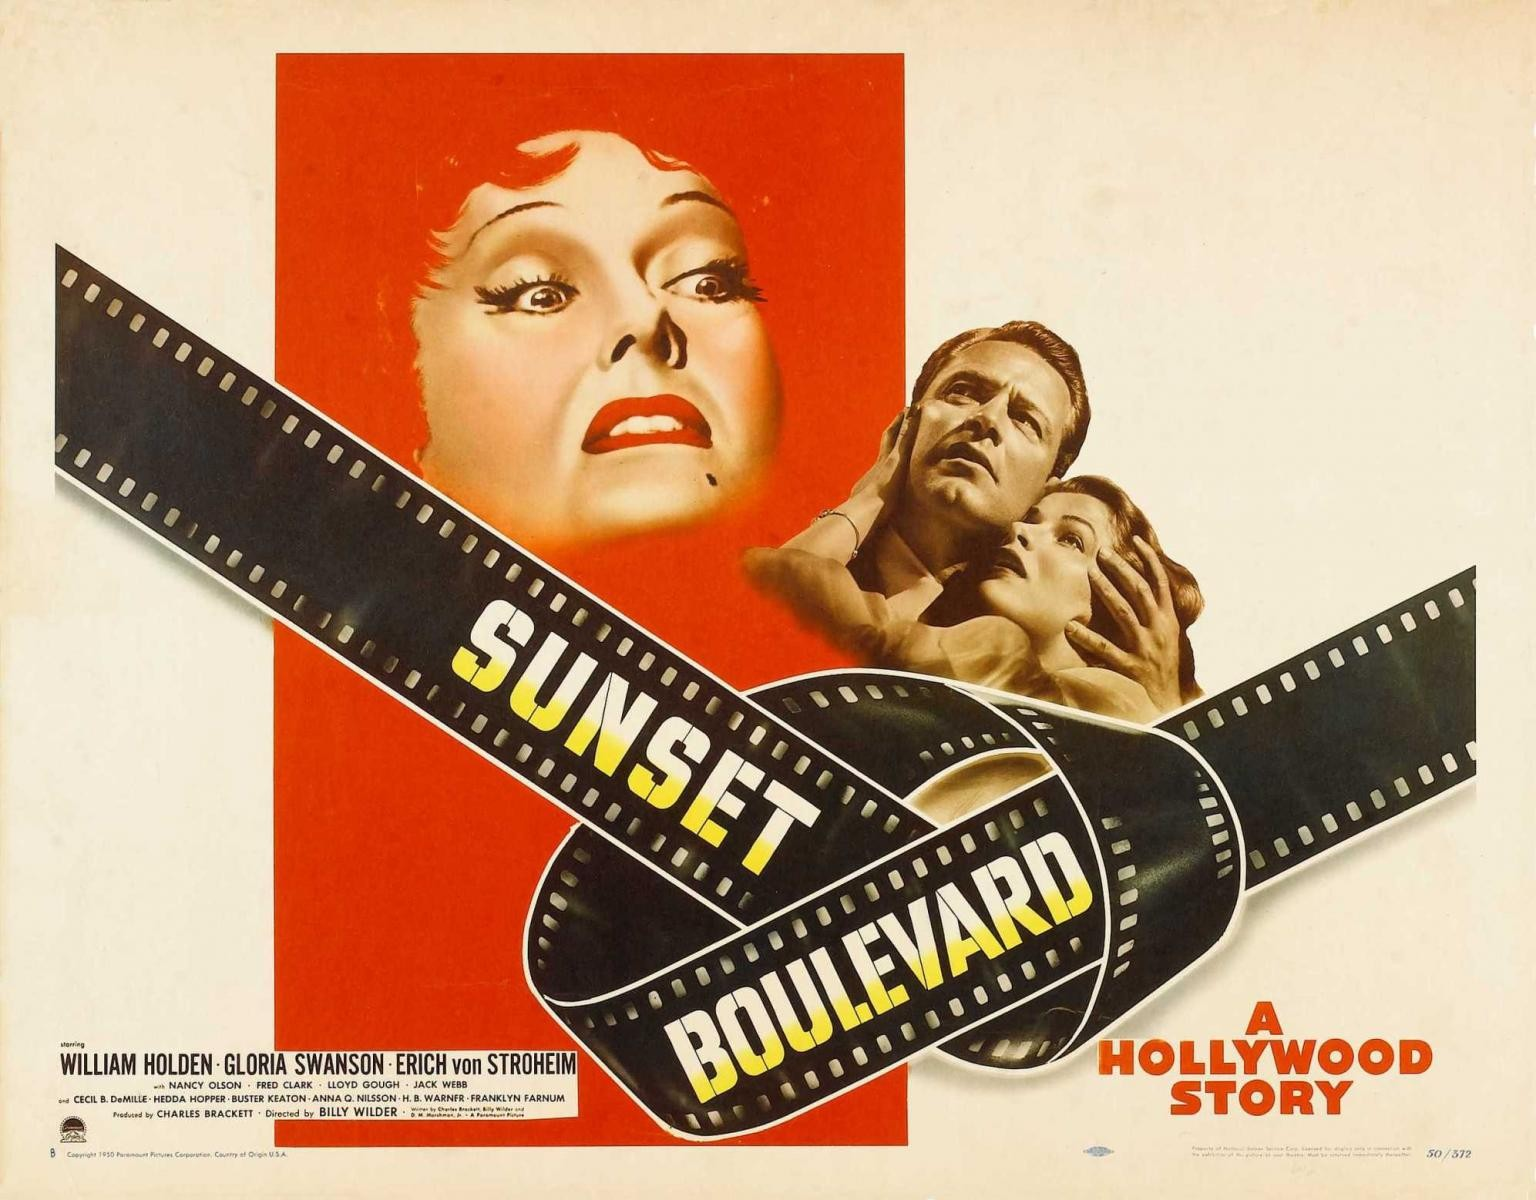 sunset boulevard essay Sunset boulevard is one of the films that consider as film noir this story set in 50s hollywood and the film industry during that time is more advances.